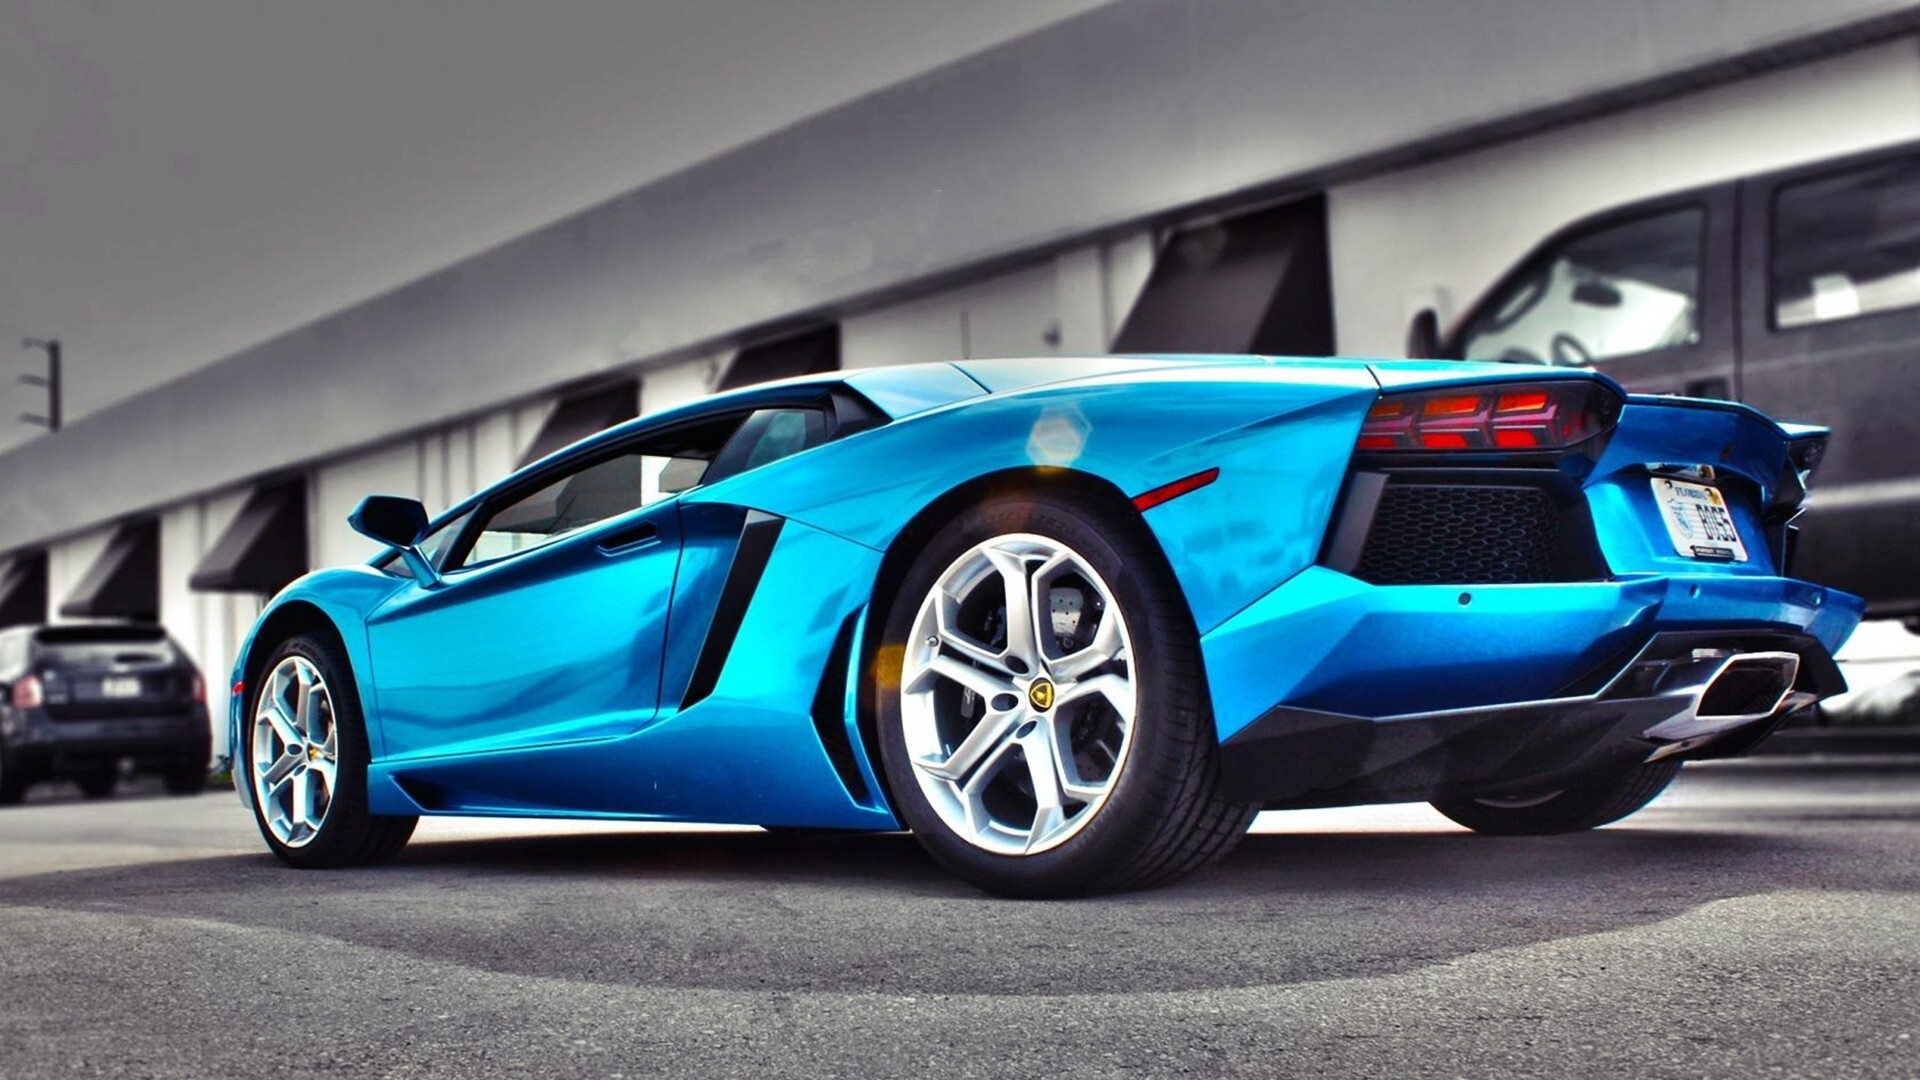 Blue Lamborghini Car Hd Desktop Photo Background Hd Wallpapers